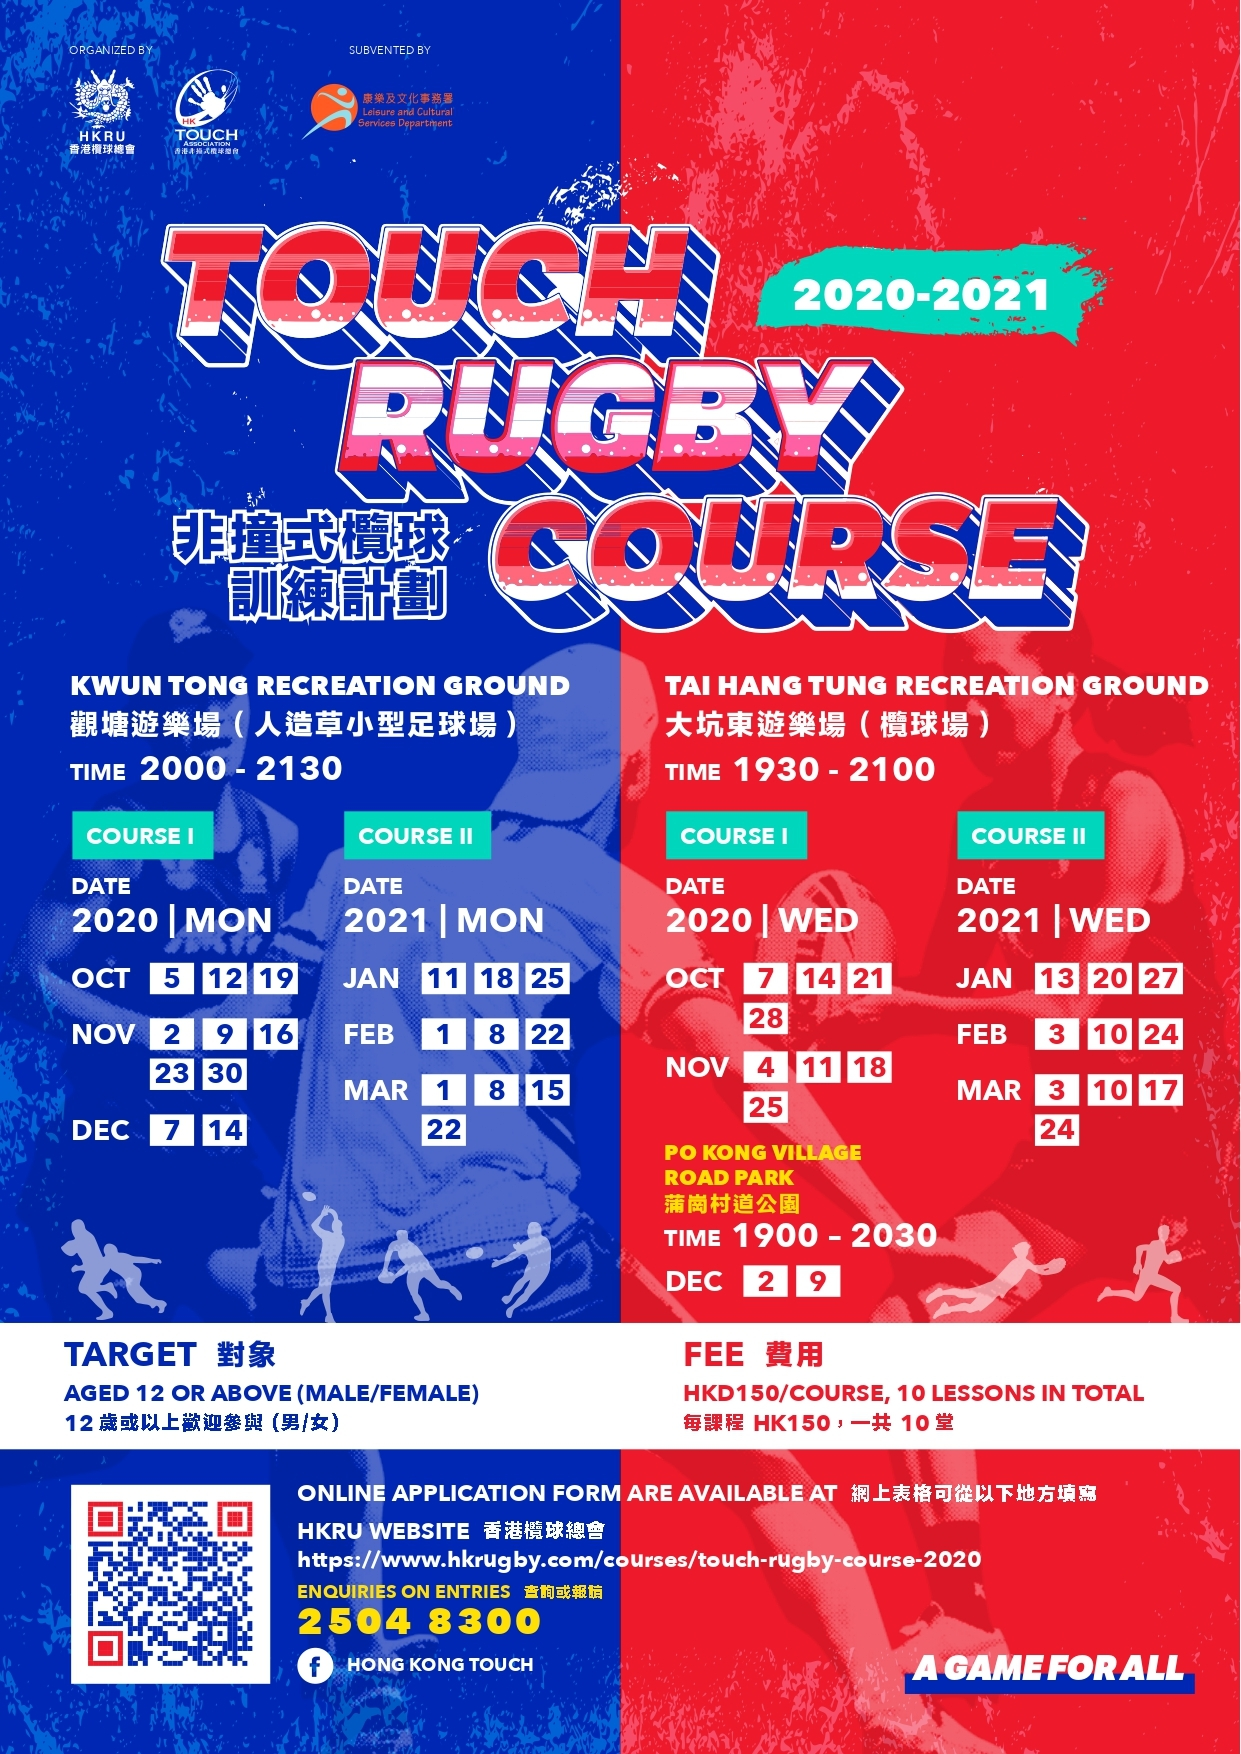 Touch Rugby Course 2020 - 2021 thumbnail